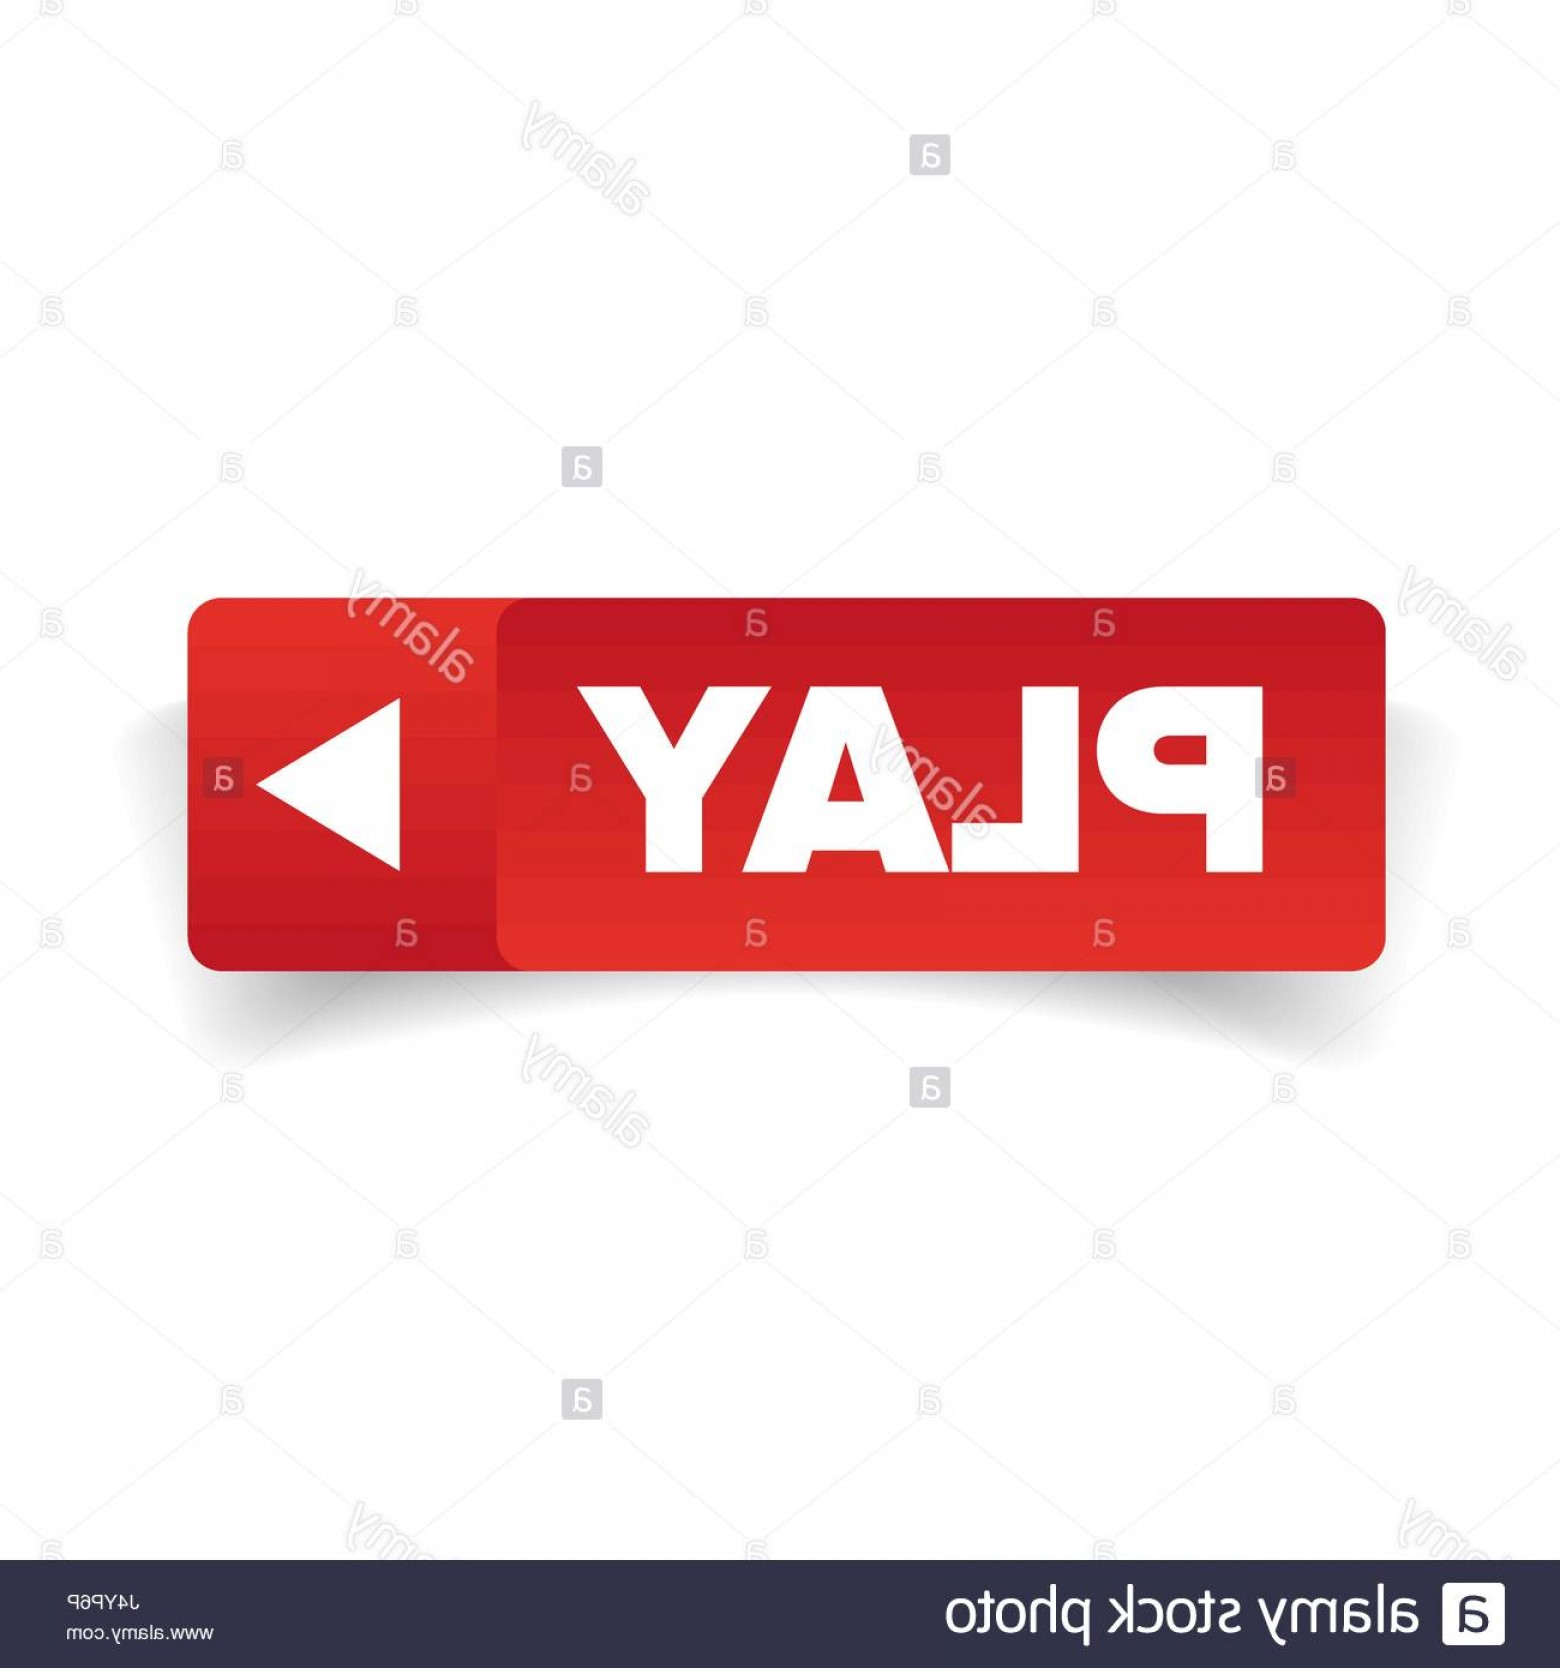 YouTube RedVector Real Life: Stock Photo Play Button Red Vector